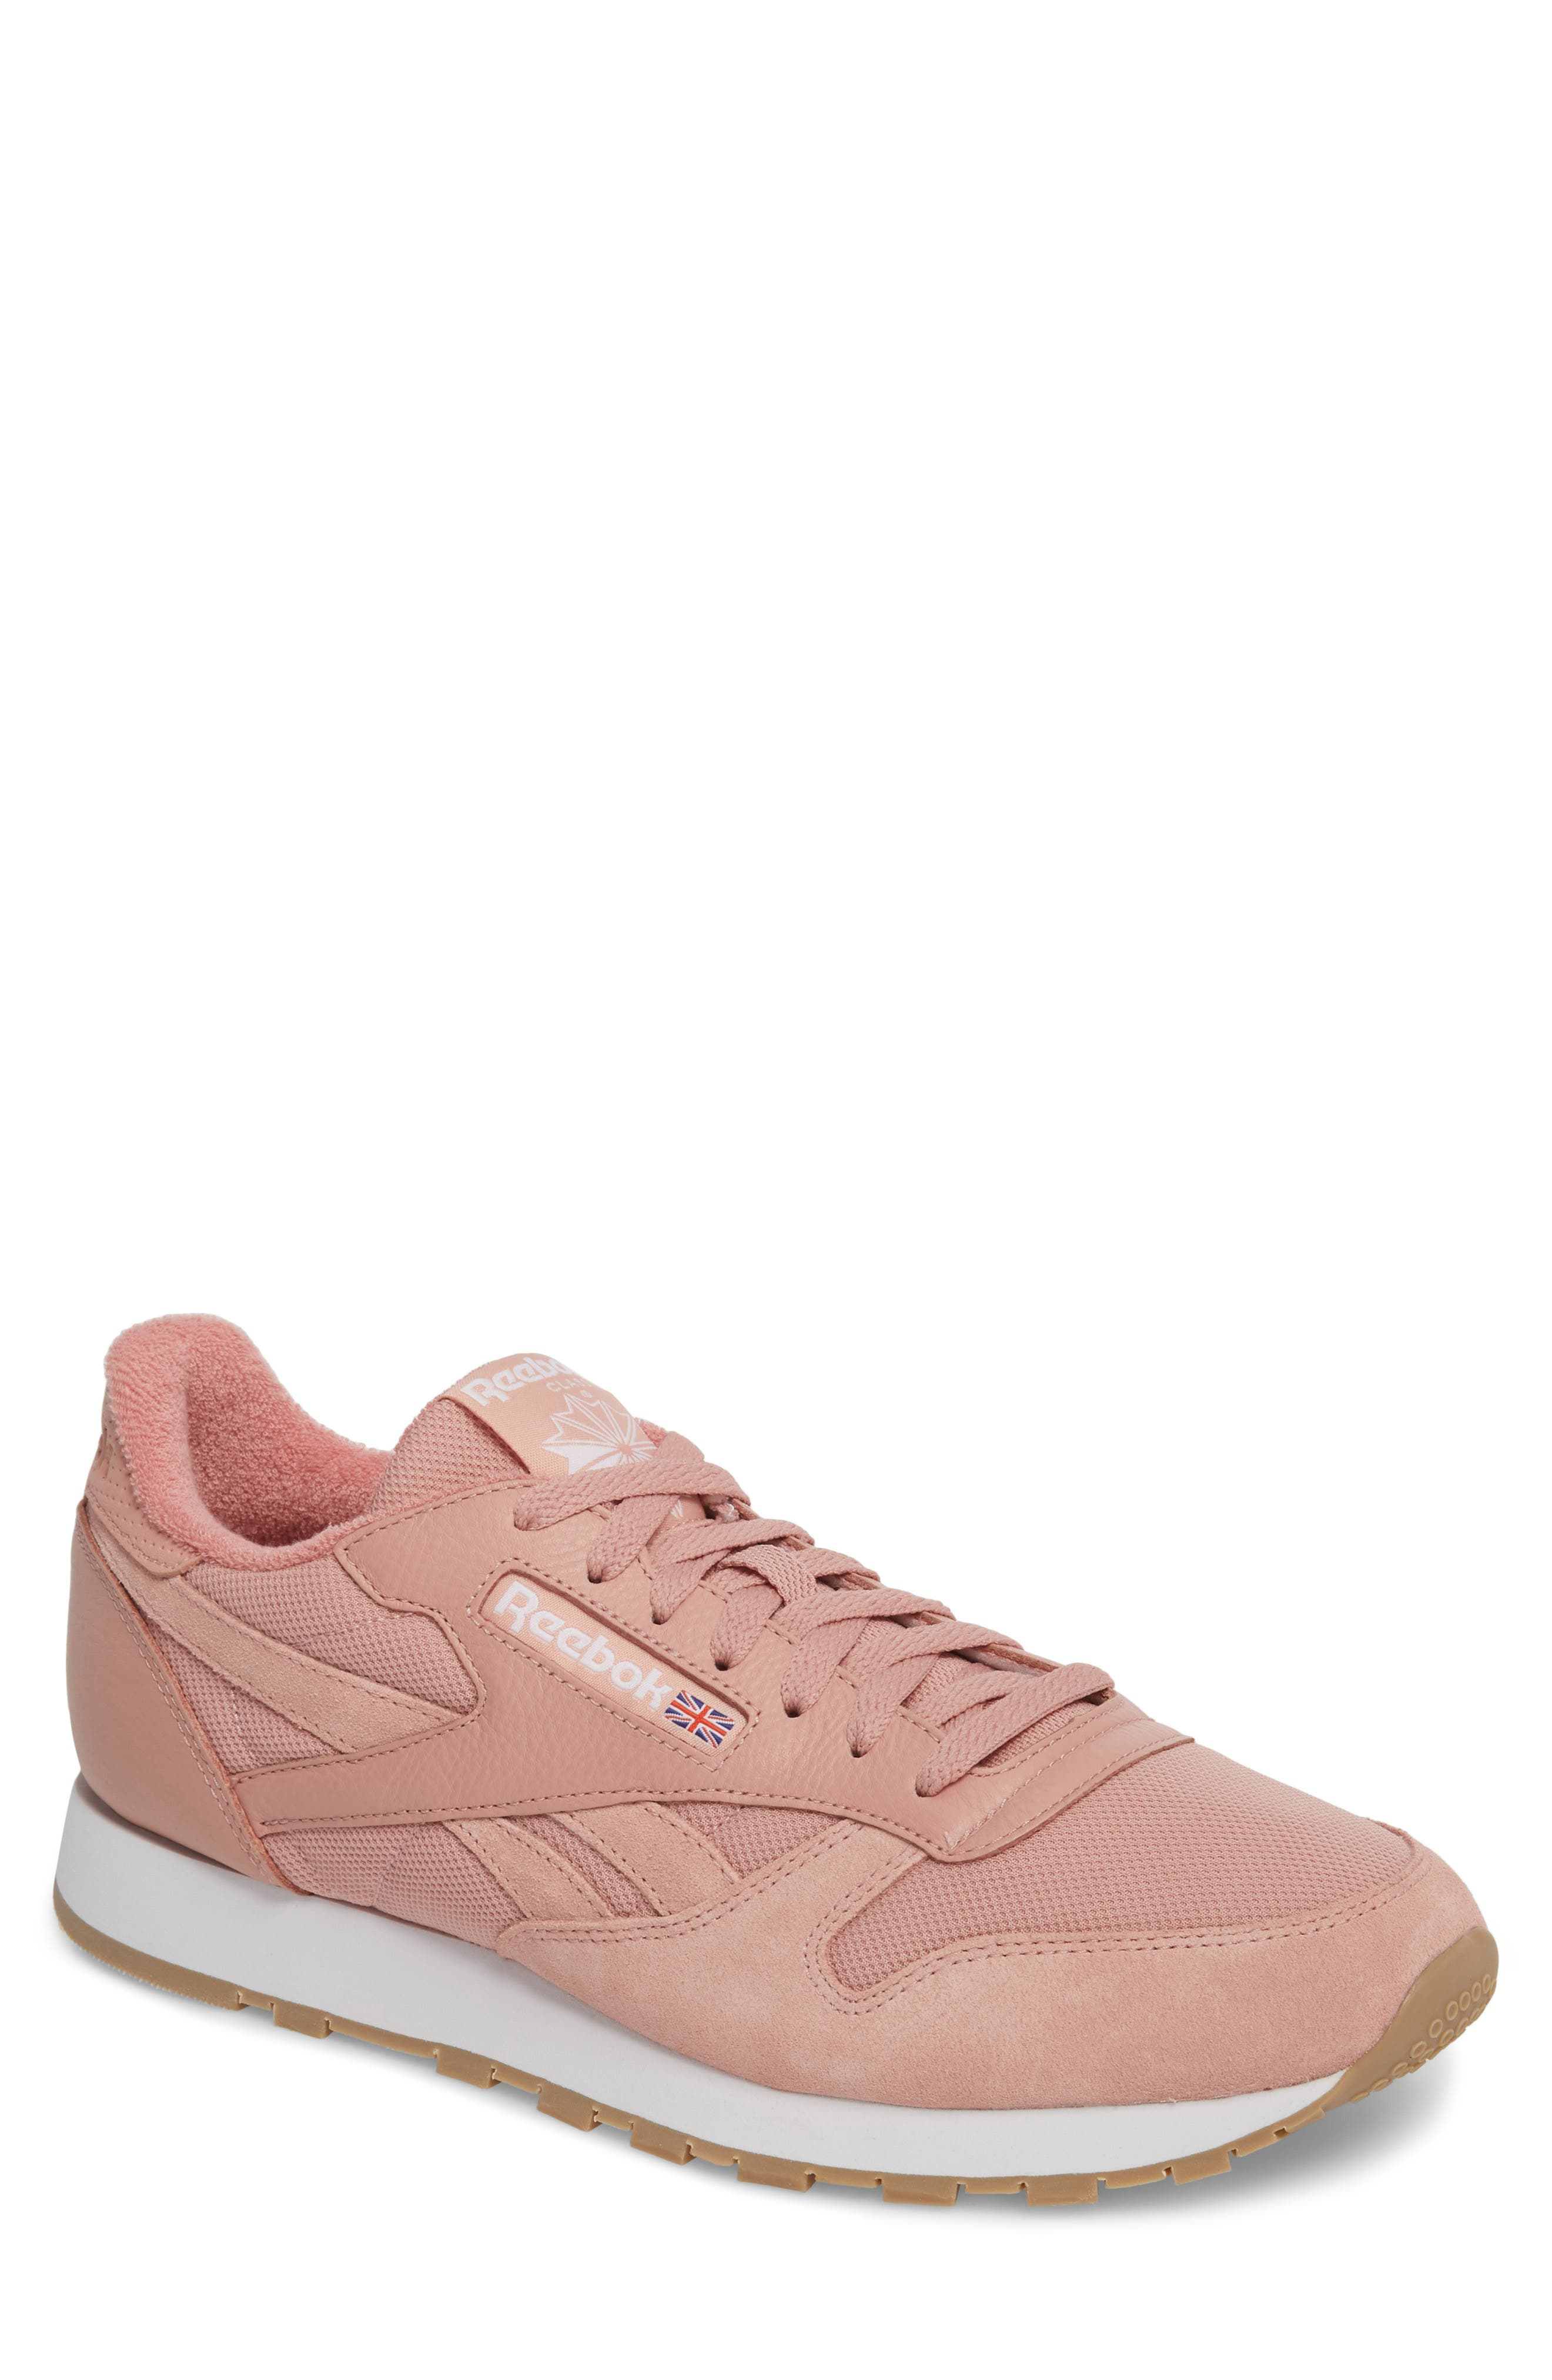 ESTL Classic Leather Sneaker,                             Main thumbnail 1, color,                             Chalk Pink/ White